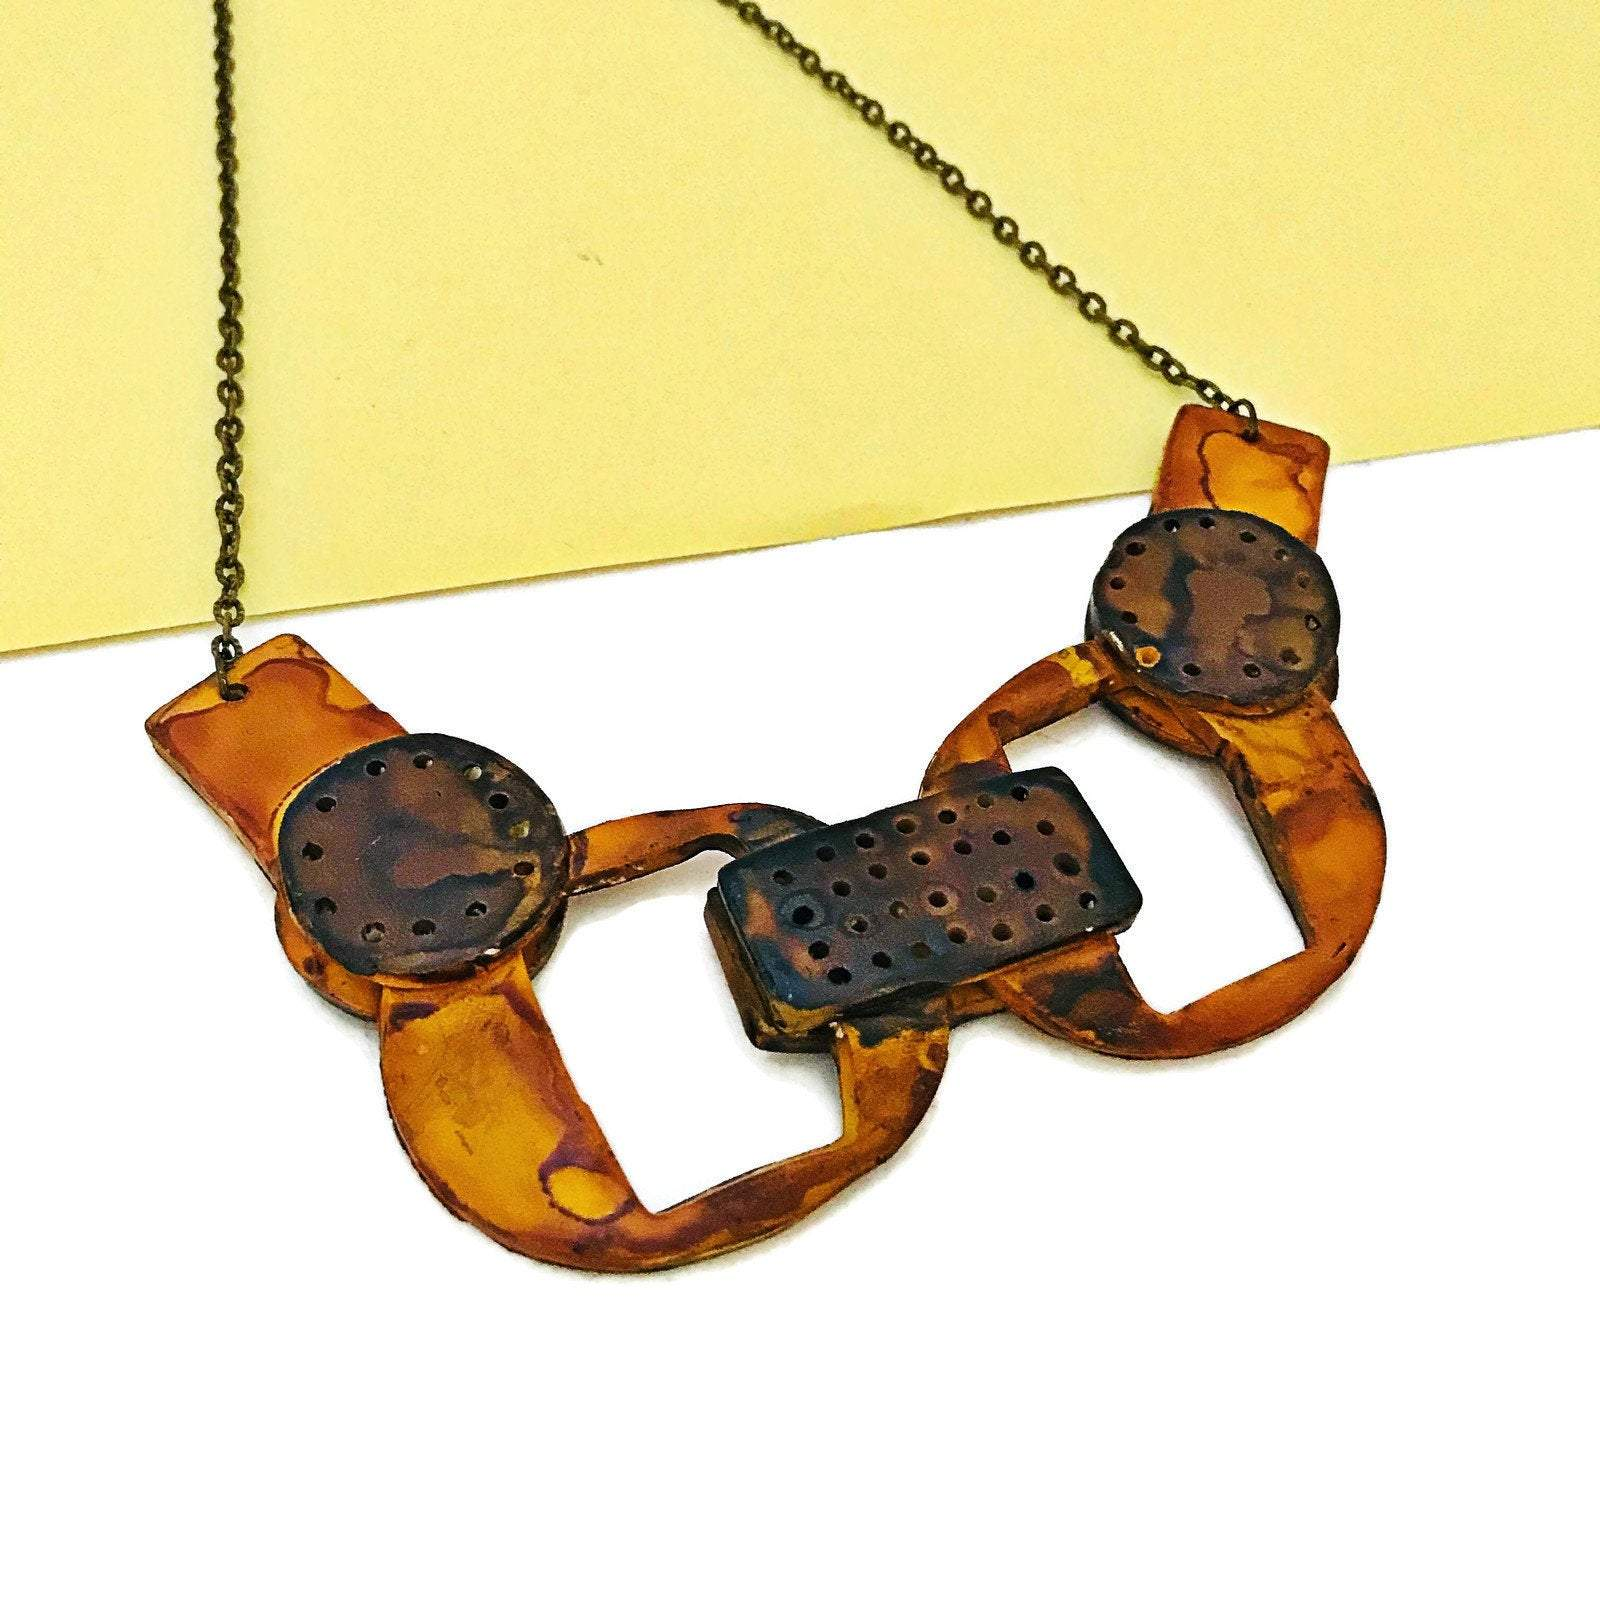 Geometric Statement Jewelry Set with Bib Necklace & Chunky Disc Earrings - Sassy Sacha Jewelry